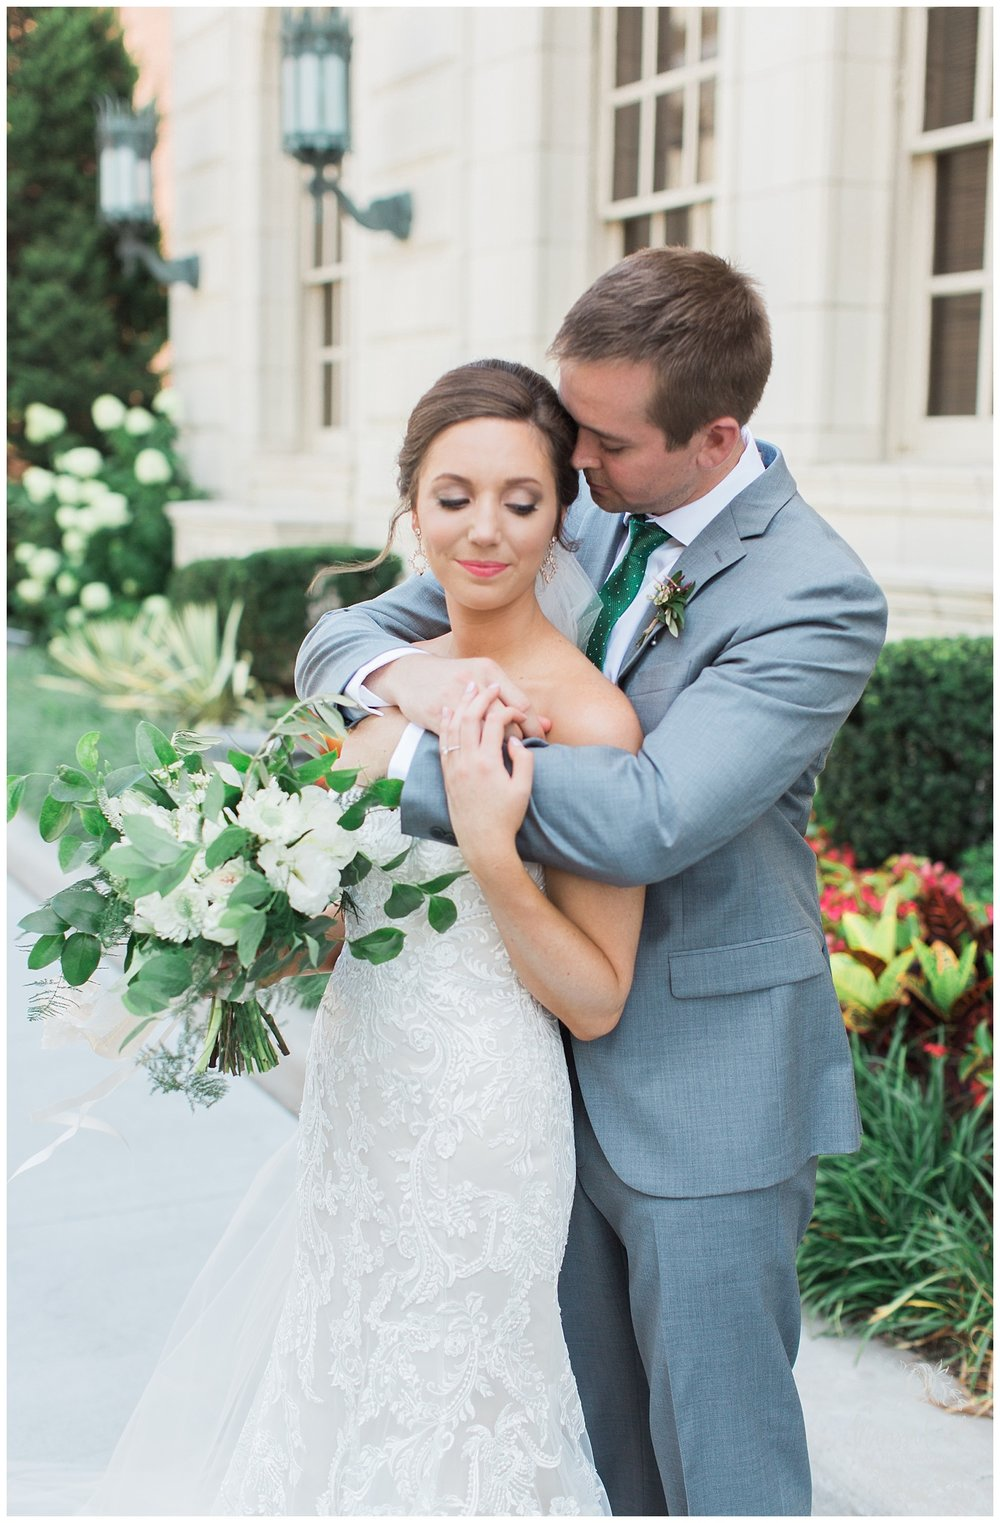 FEASTS OF FANCY KC WEDDING | THE HOBBS WEDDING KANSAS CITY | MARISSA CRIBBS PHOTOGRAPHY_2184.jpg